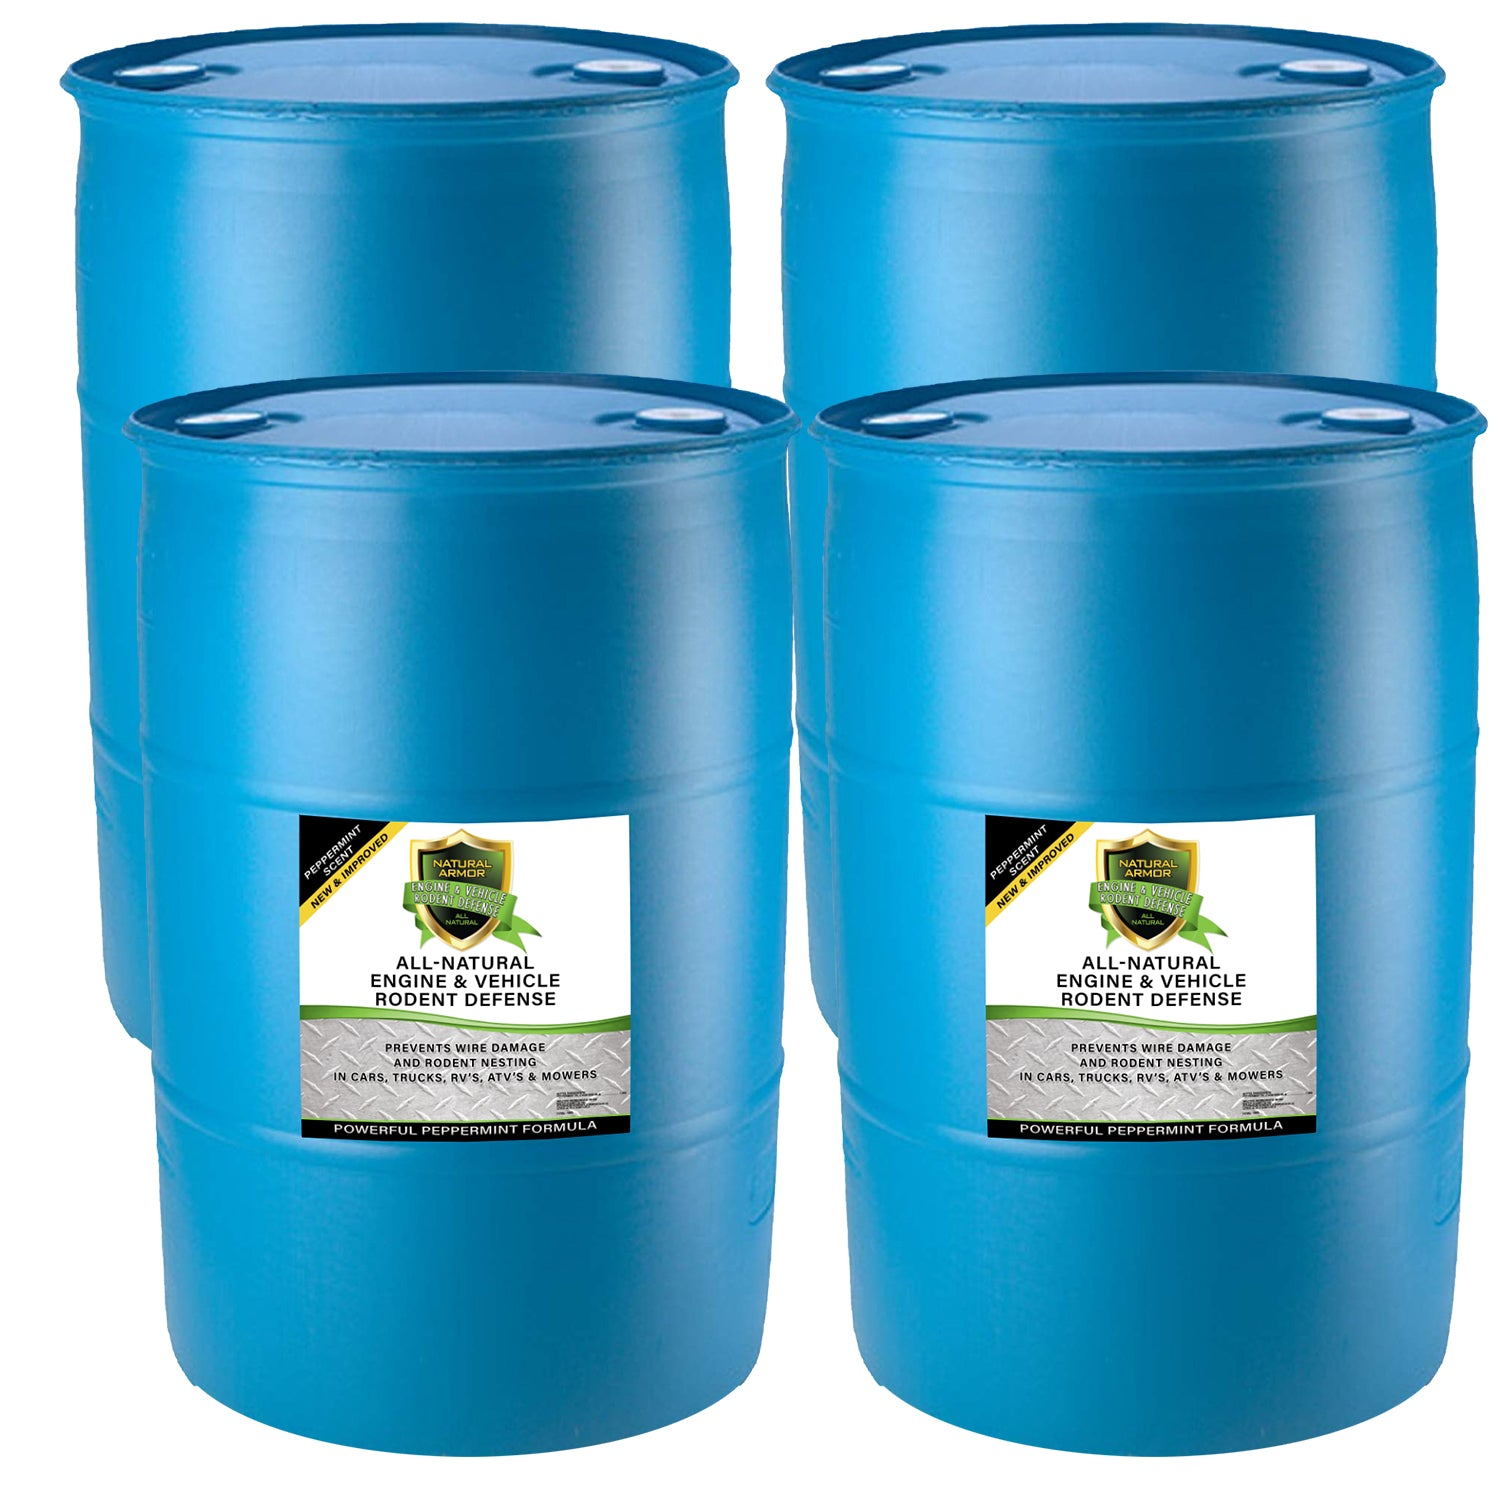 All-Natural Vehicle & Engine Protection - Ready to Use - (4) 55 Gallon Drums